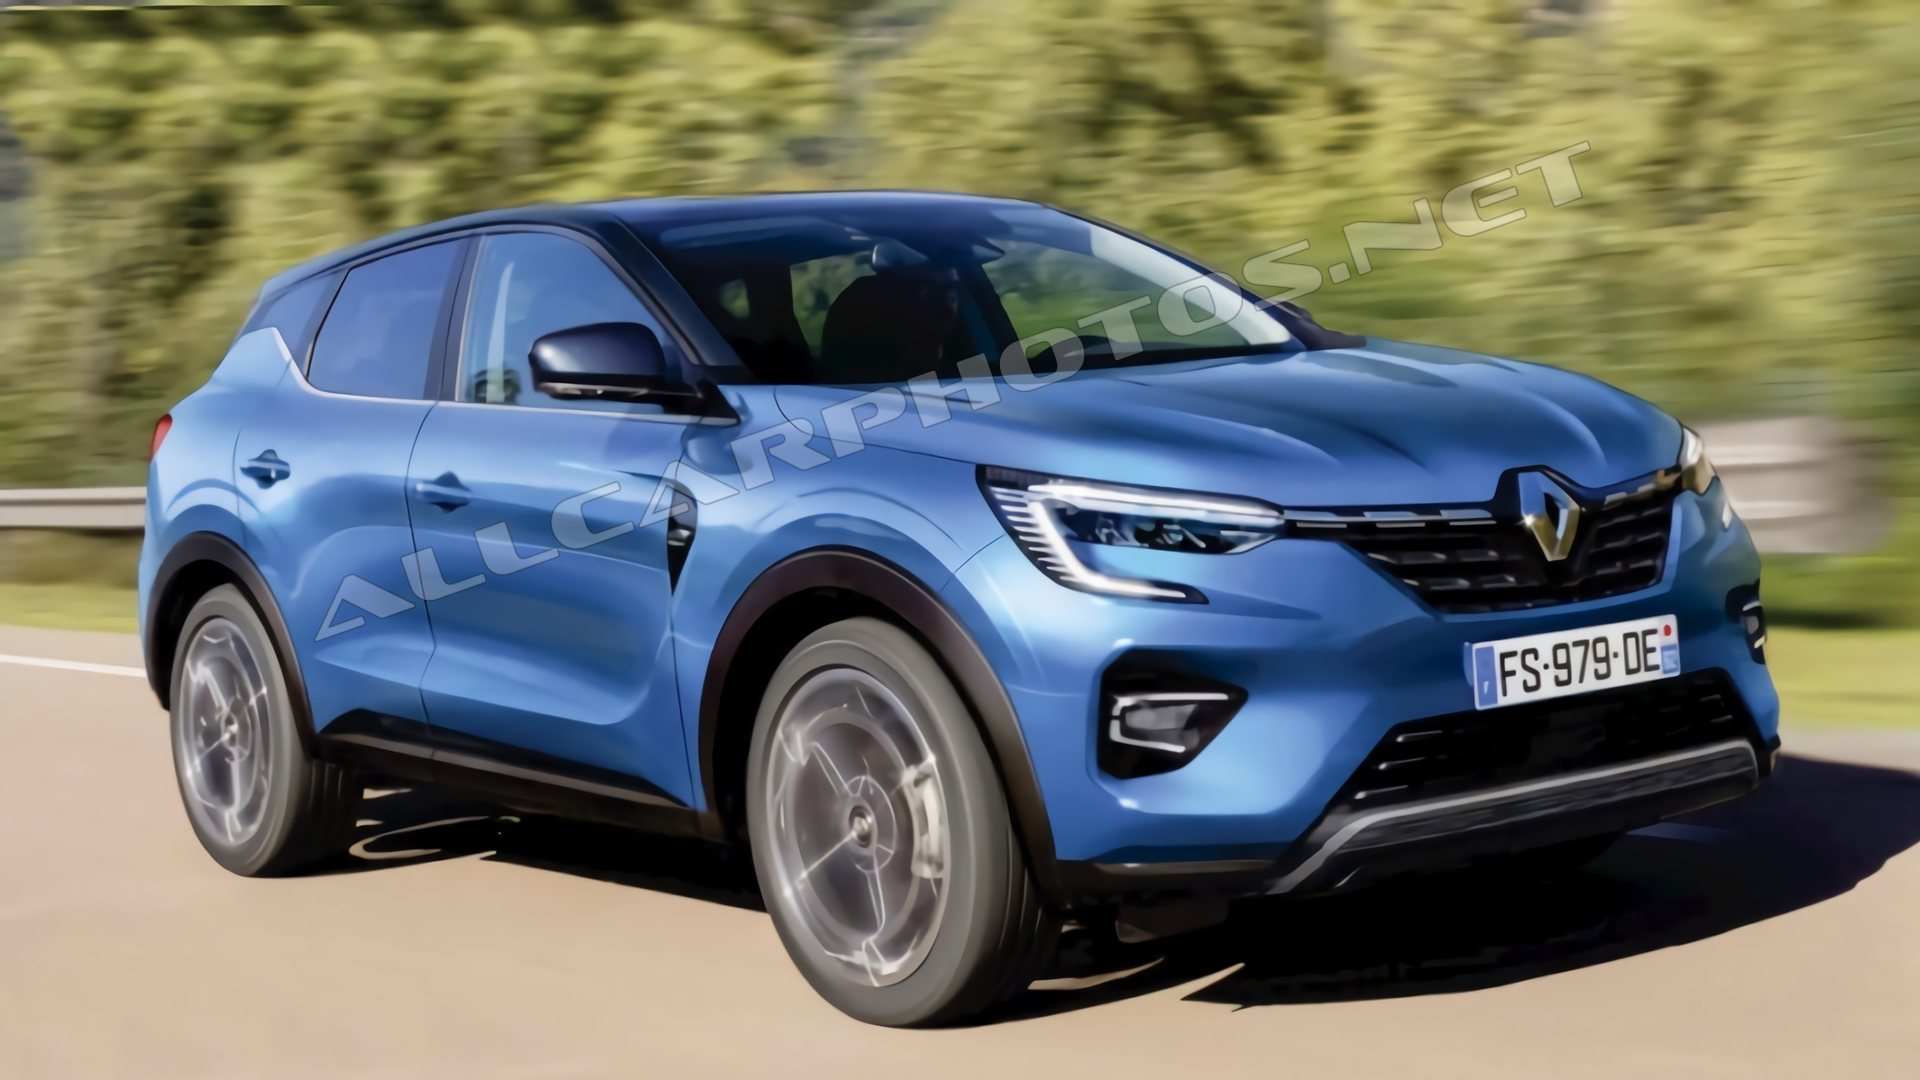 Photo of Renault Kadjar 2021: Facelift & Price